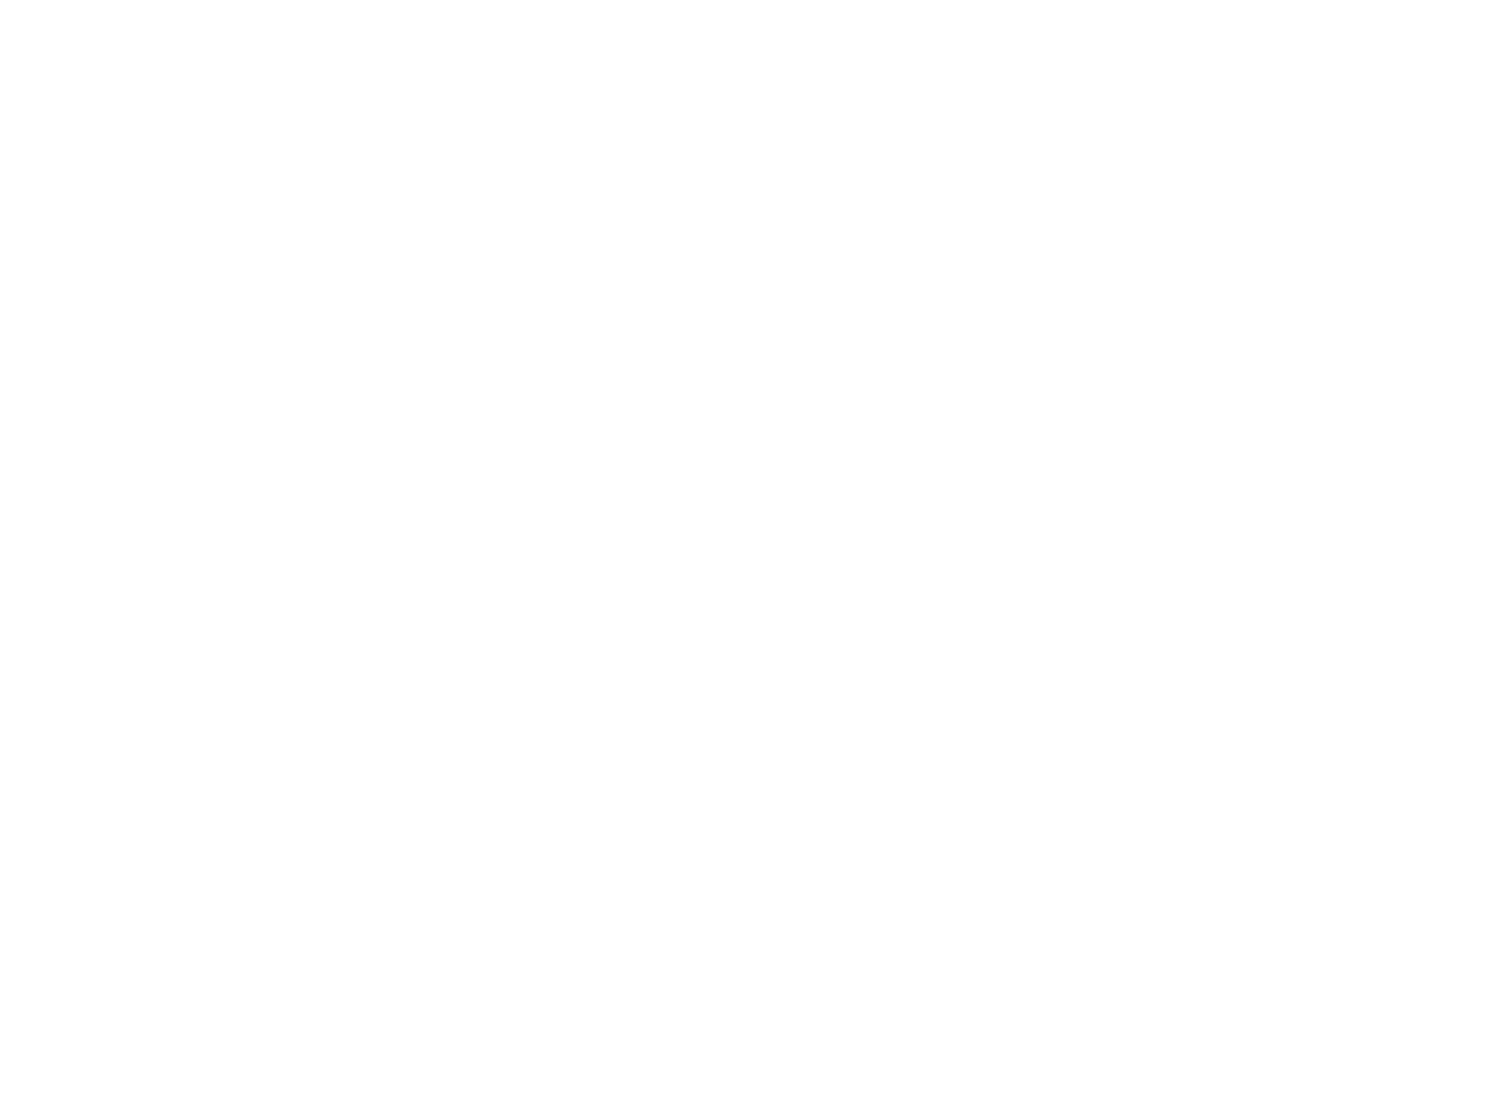 Captain Cat and The Sailors